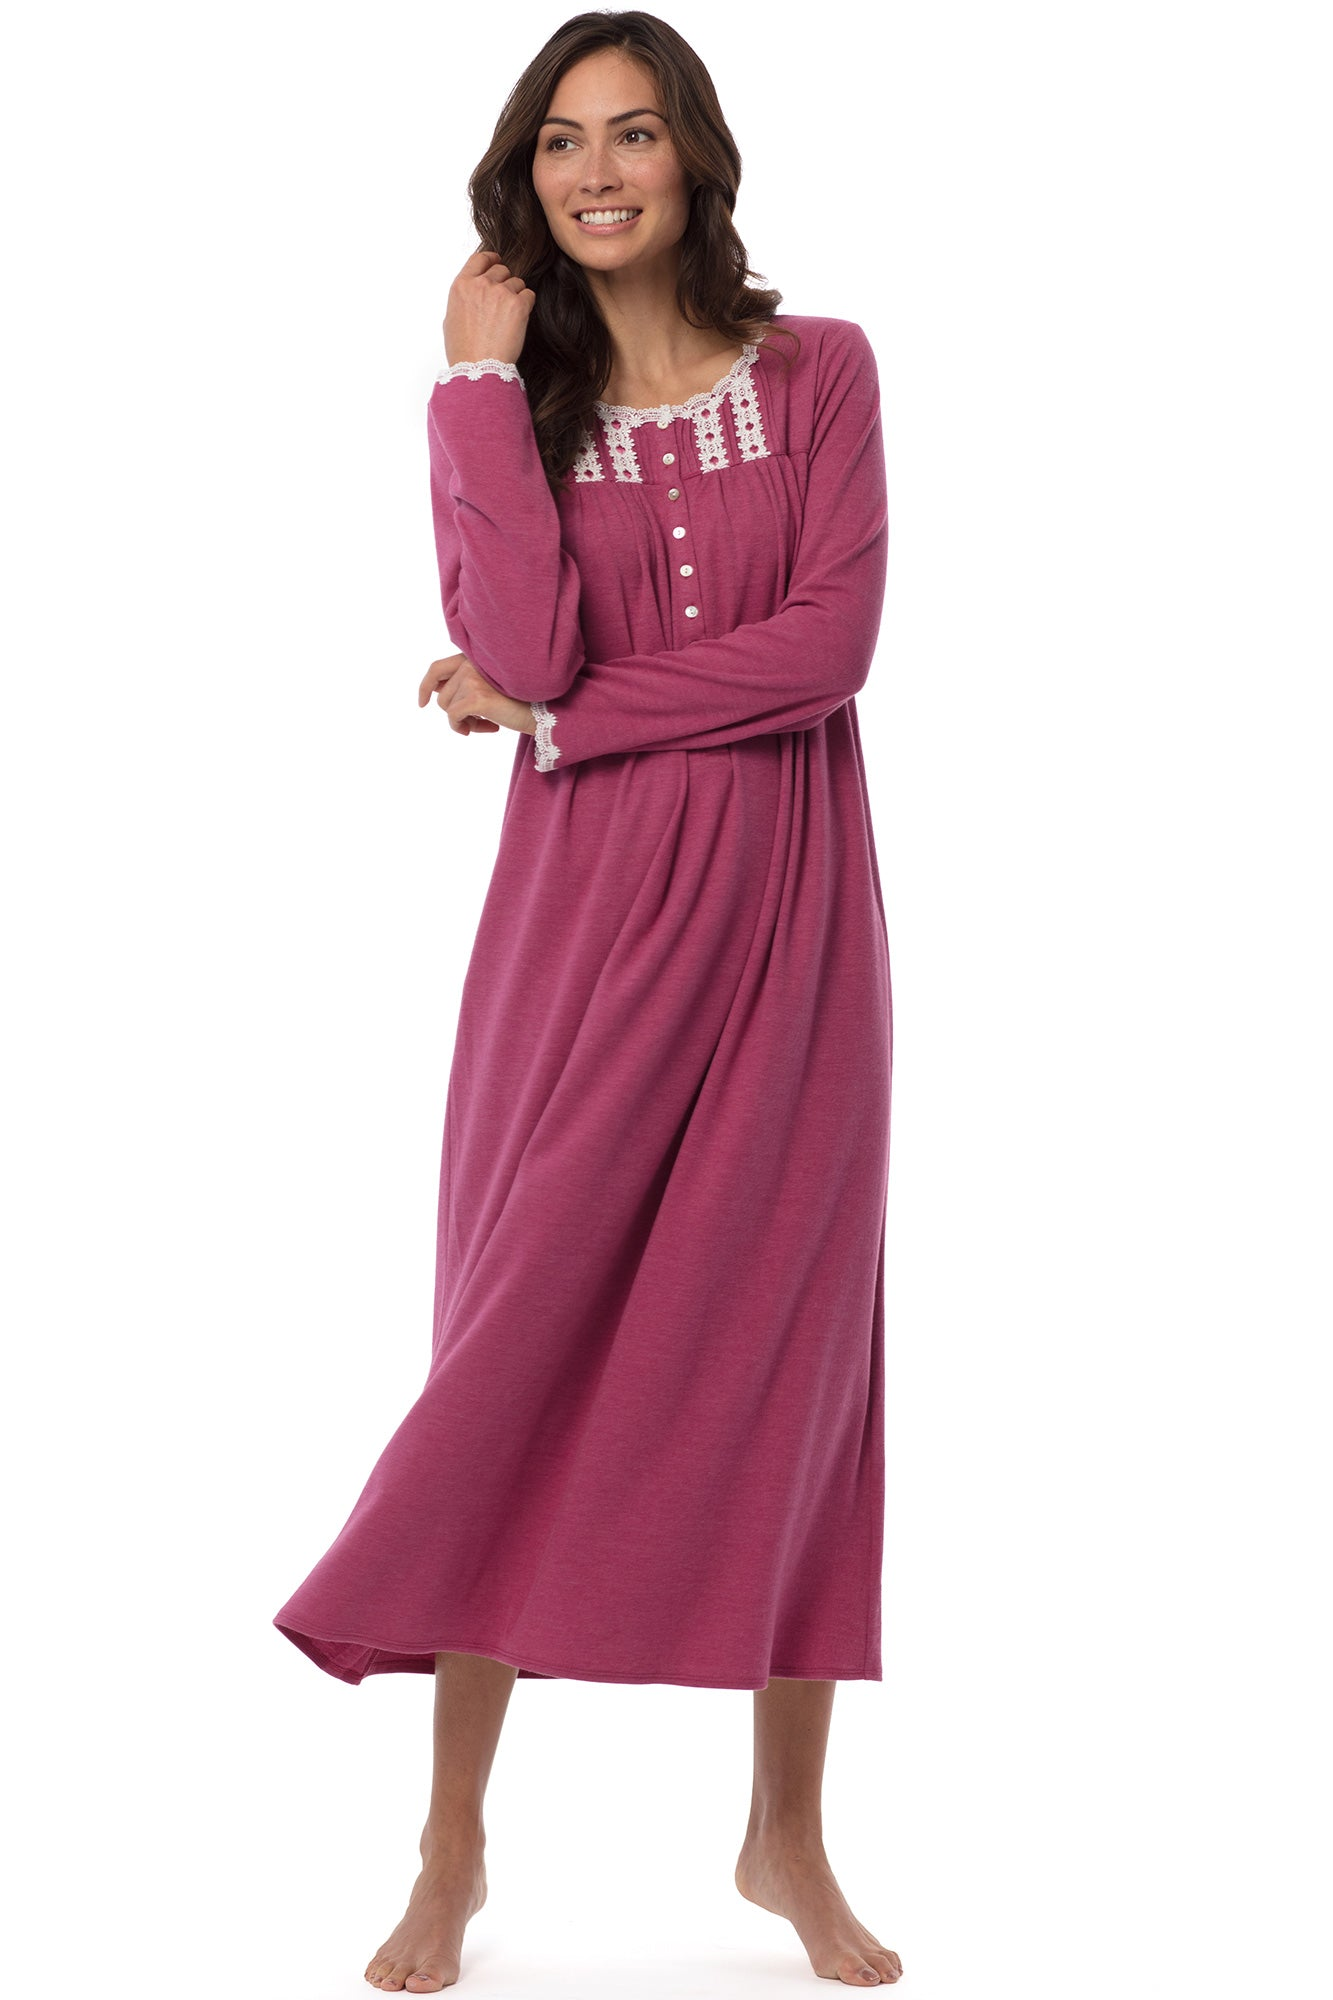 eileen west sleepwear intimate apparel dresses products for home